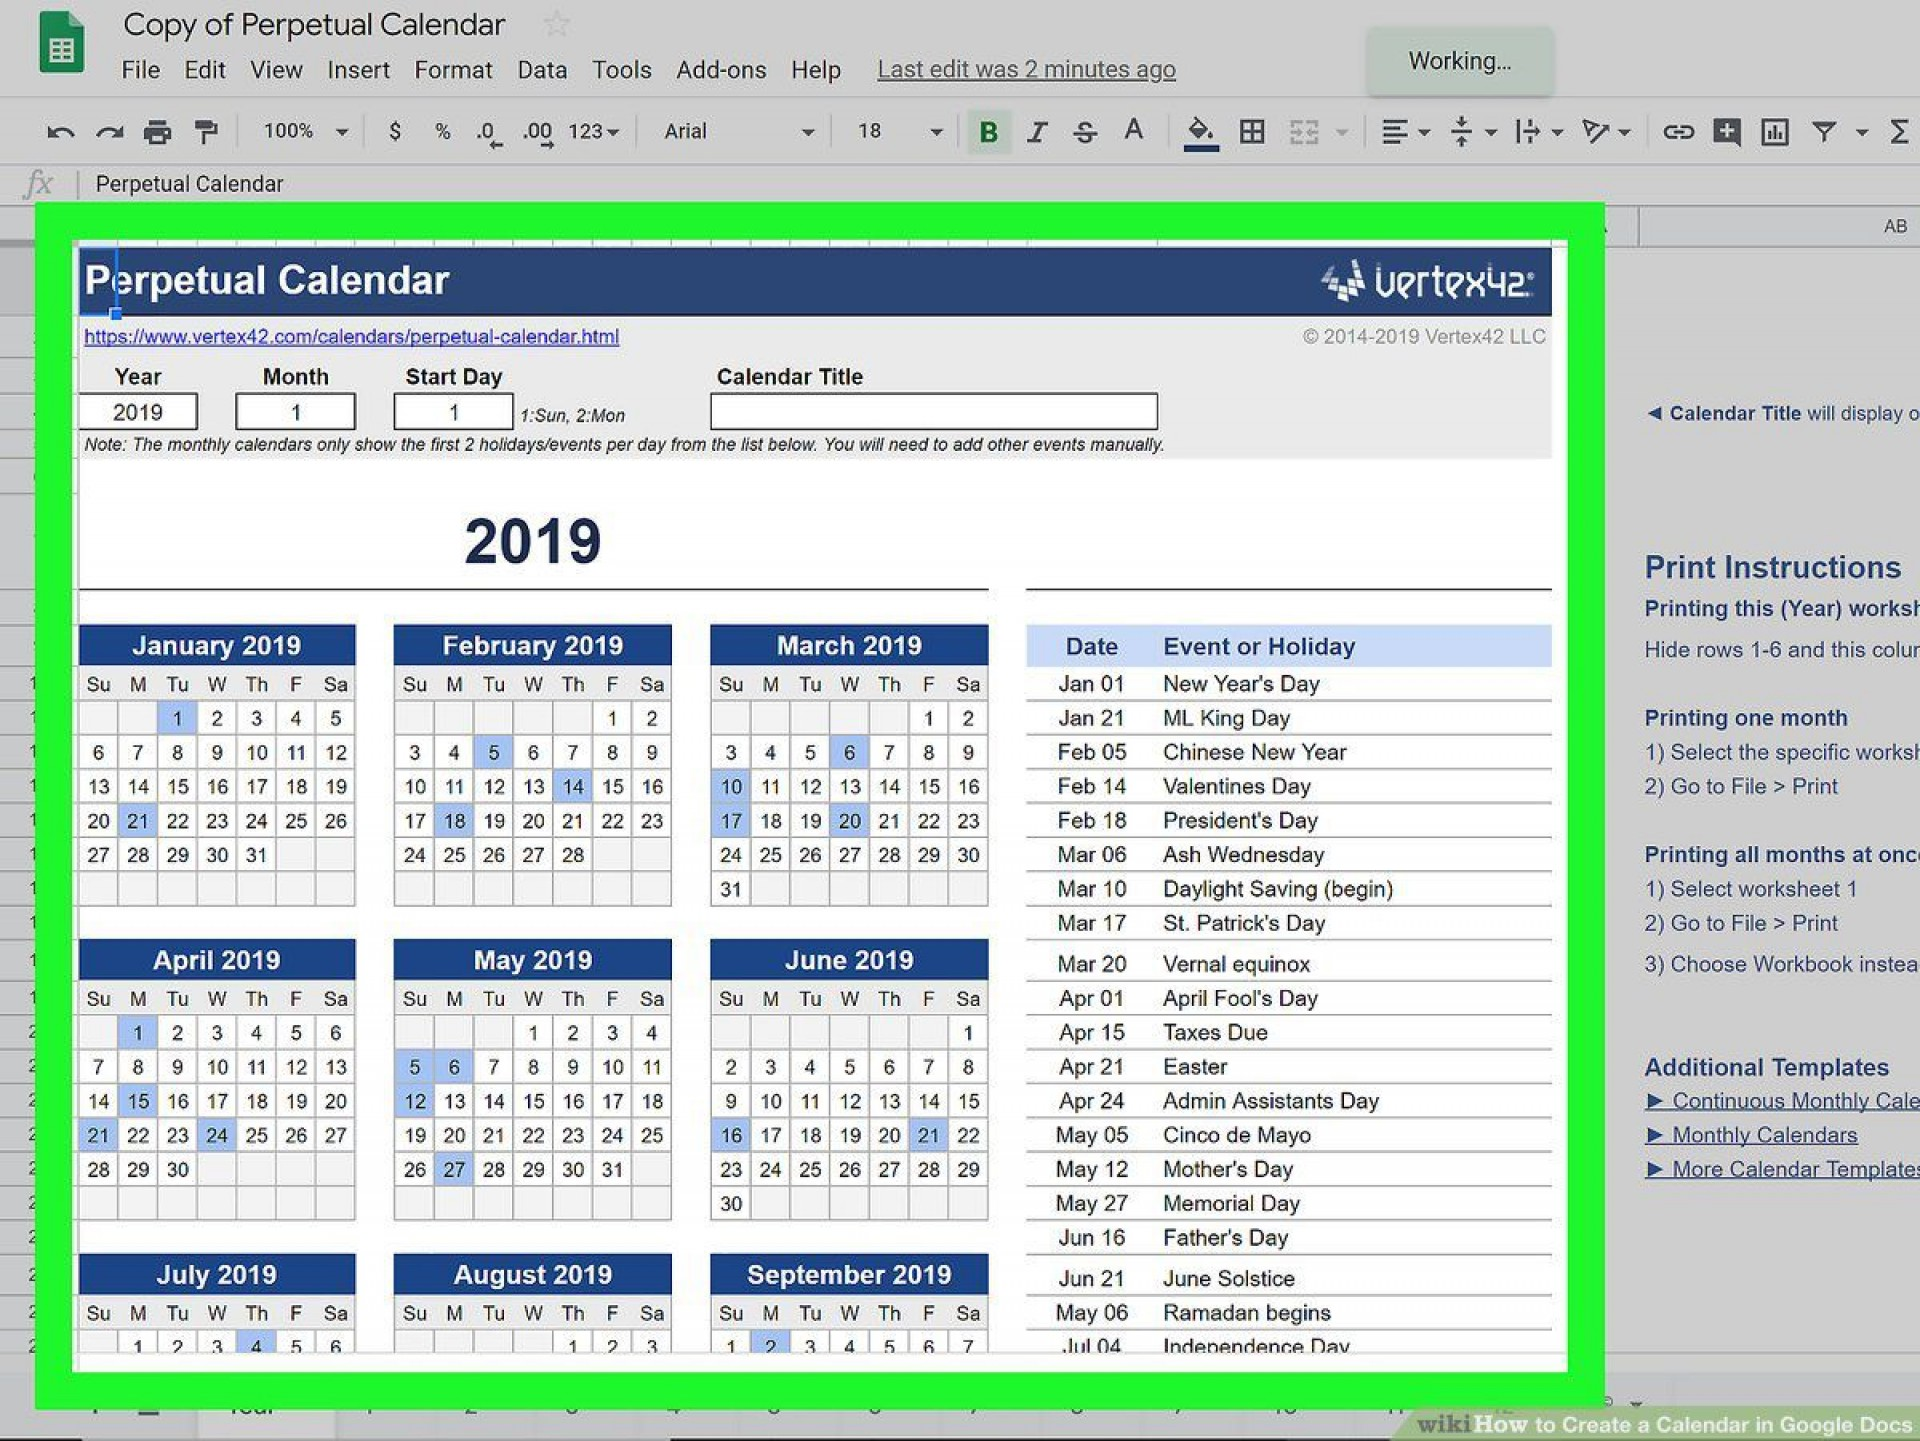 000 Impressive Google Sheet Calendar Template 2020 Picture  Monthly And 2021 2020-211920